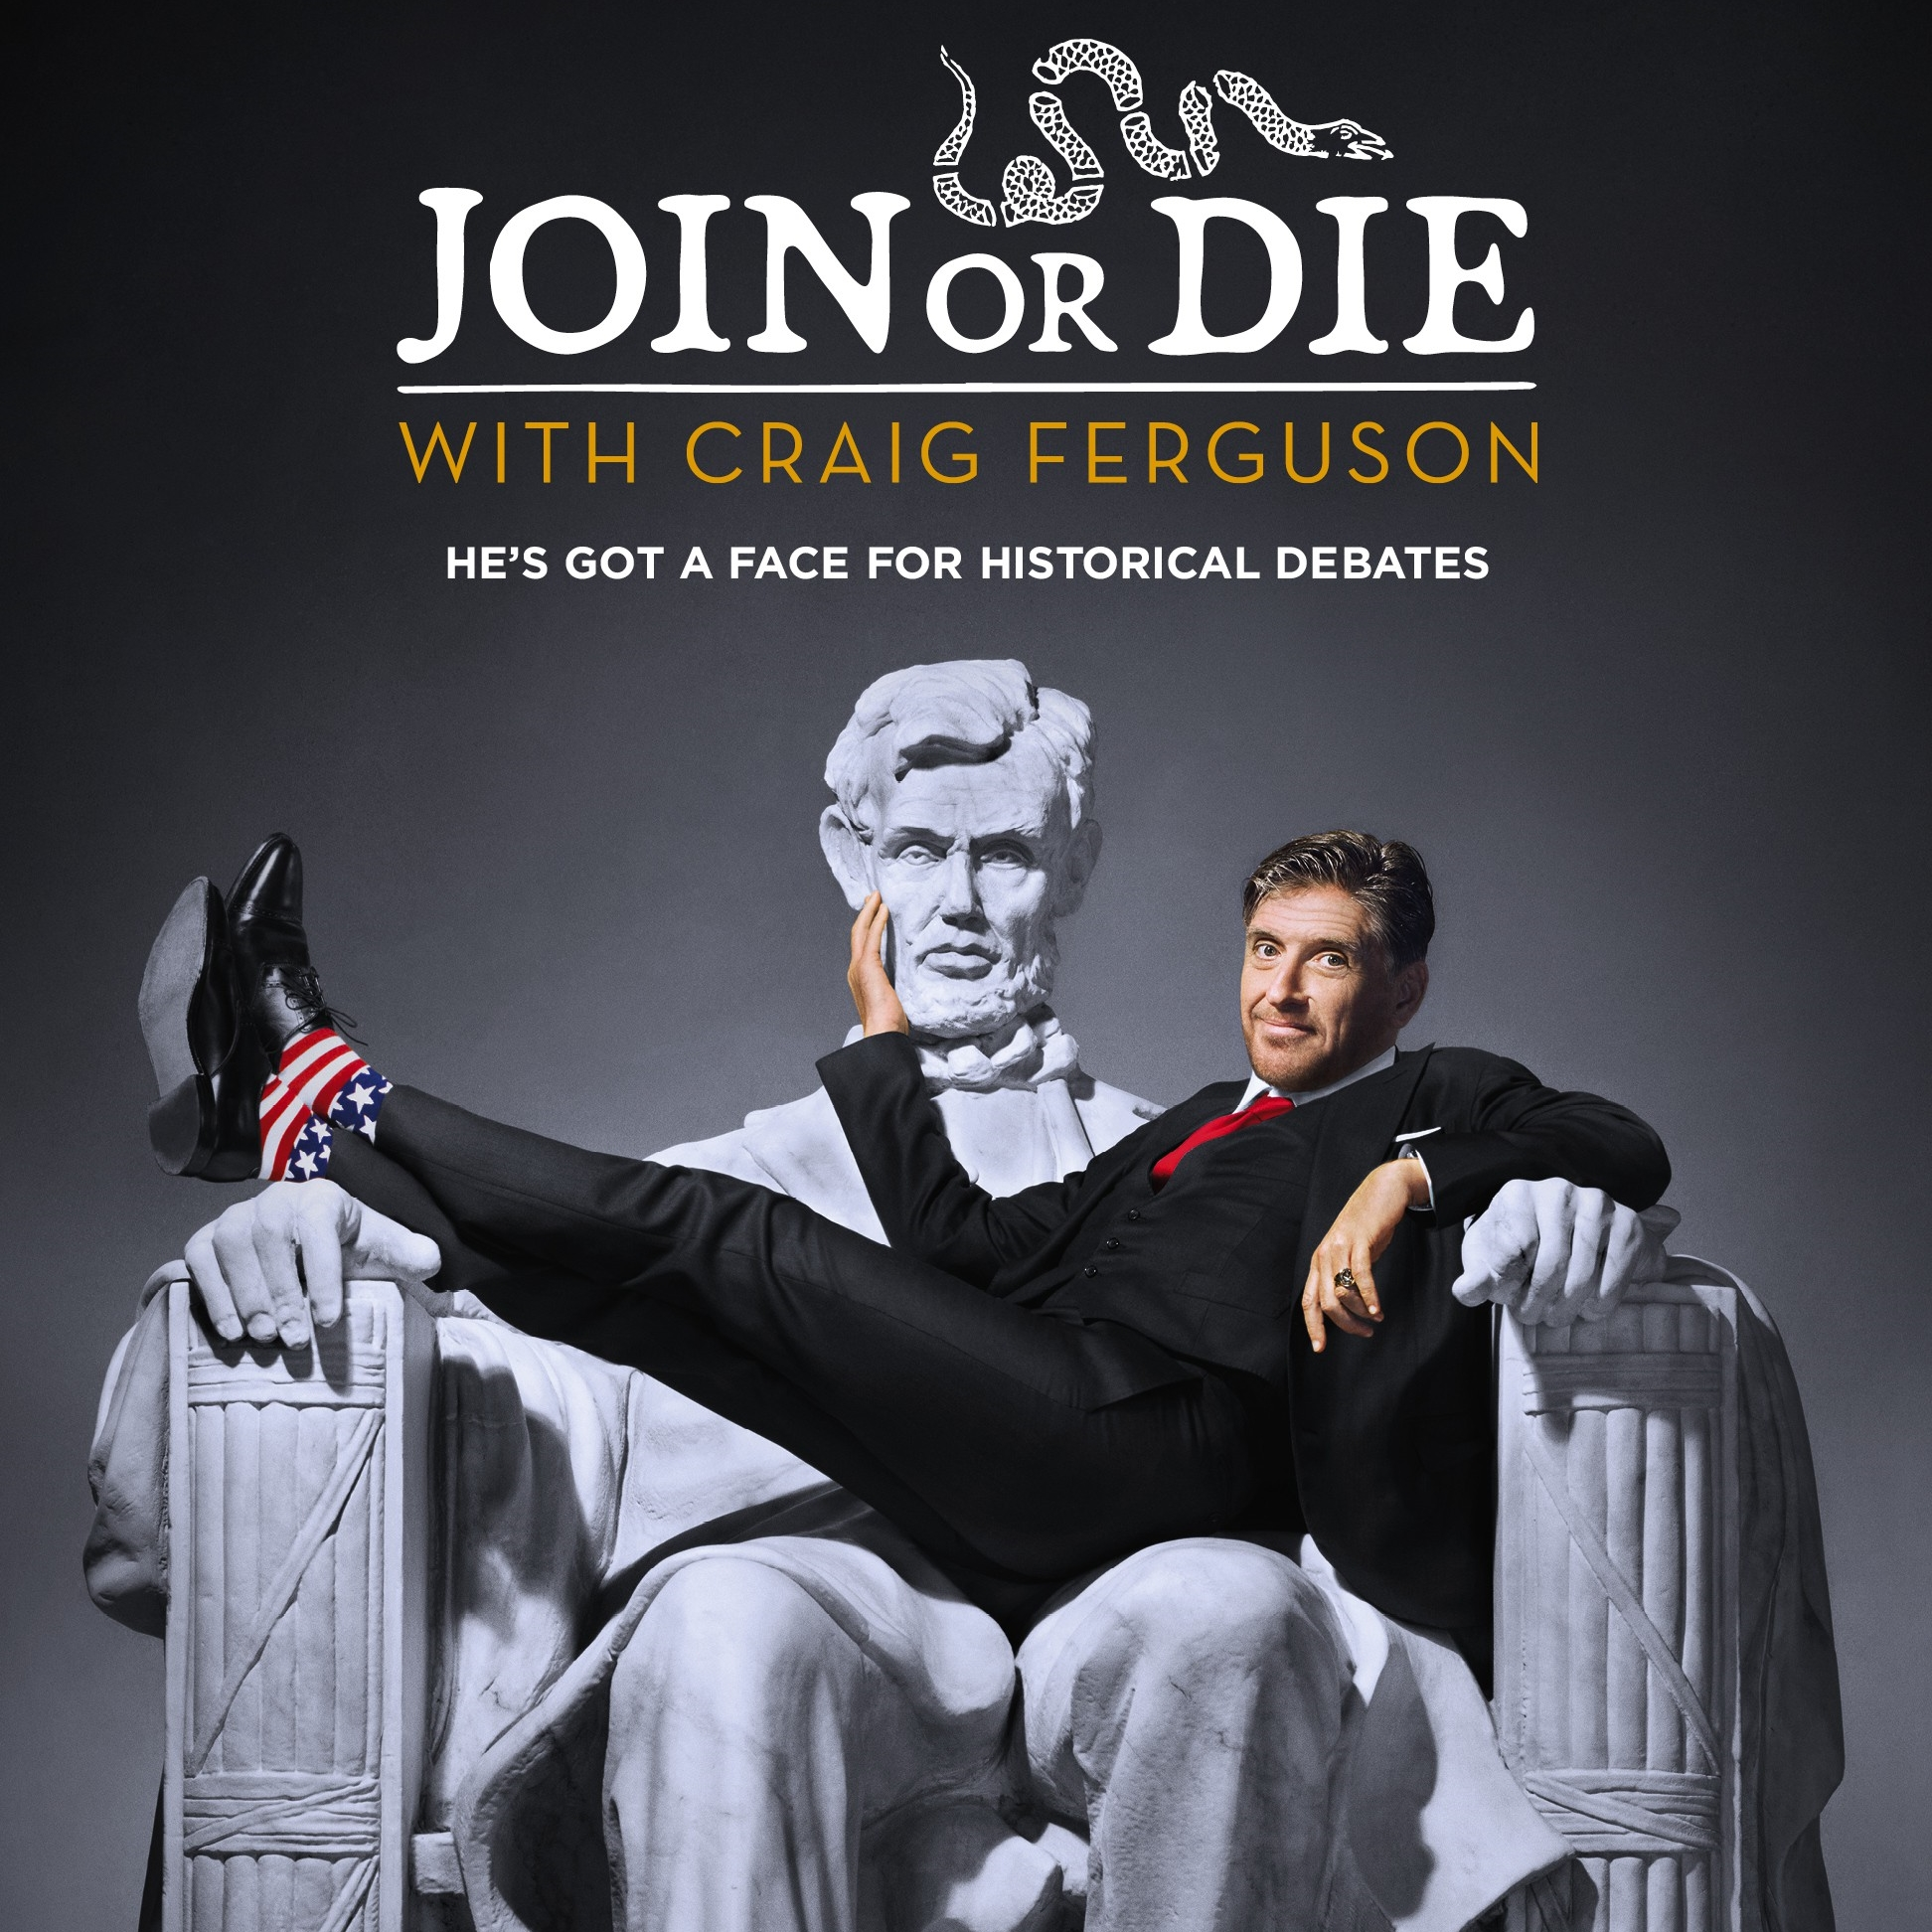 Join-or-Die-with-Craig-Ferguson-Season-1_poster_goldposter_com_2.jpg